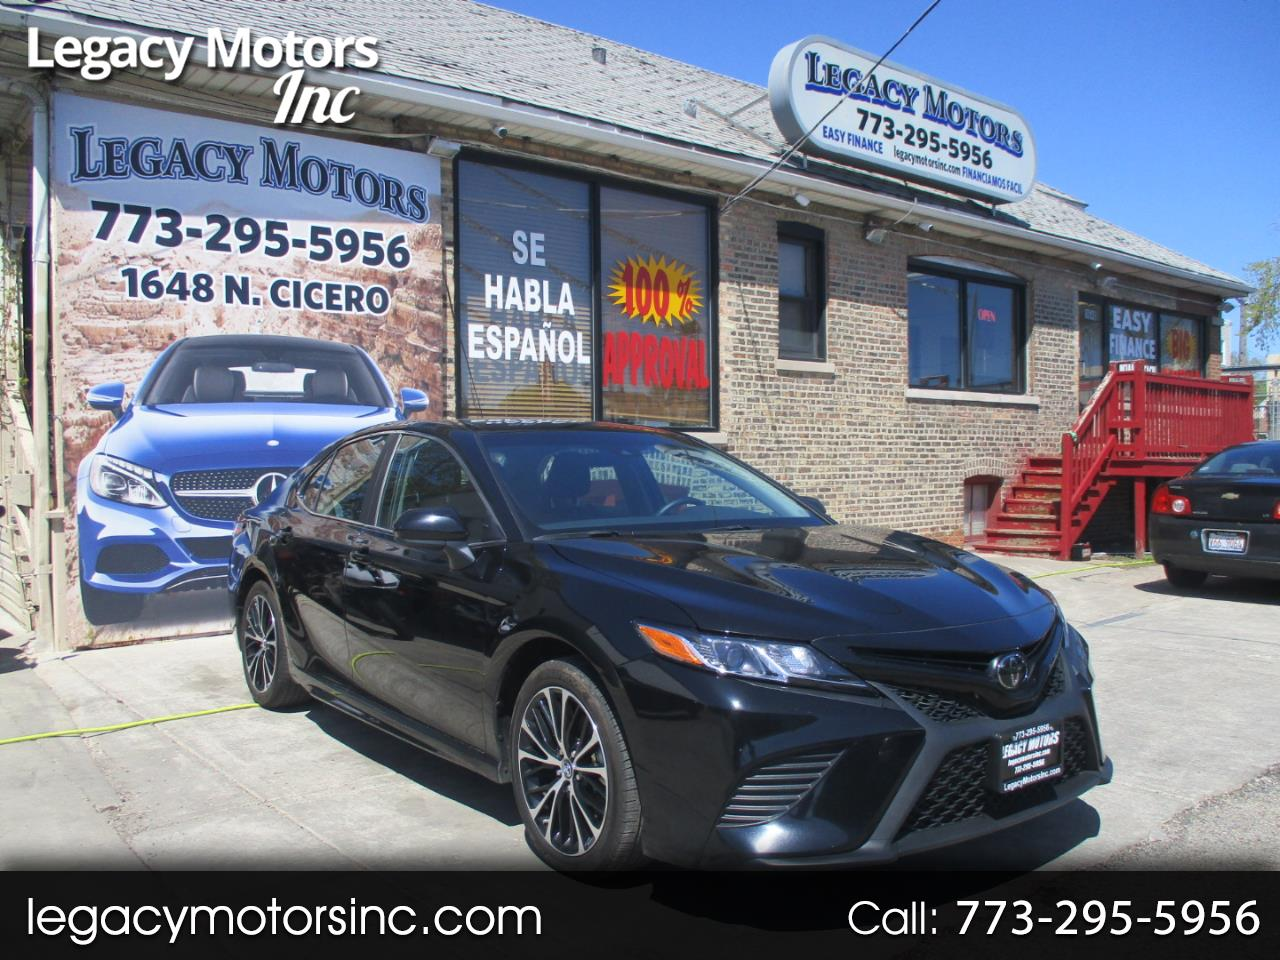 2018 Toyota Camry 2014.5 4dr Sdn I4 Auto SE Sport (Natl)